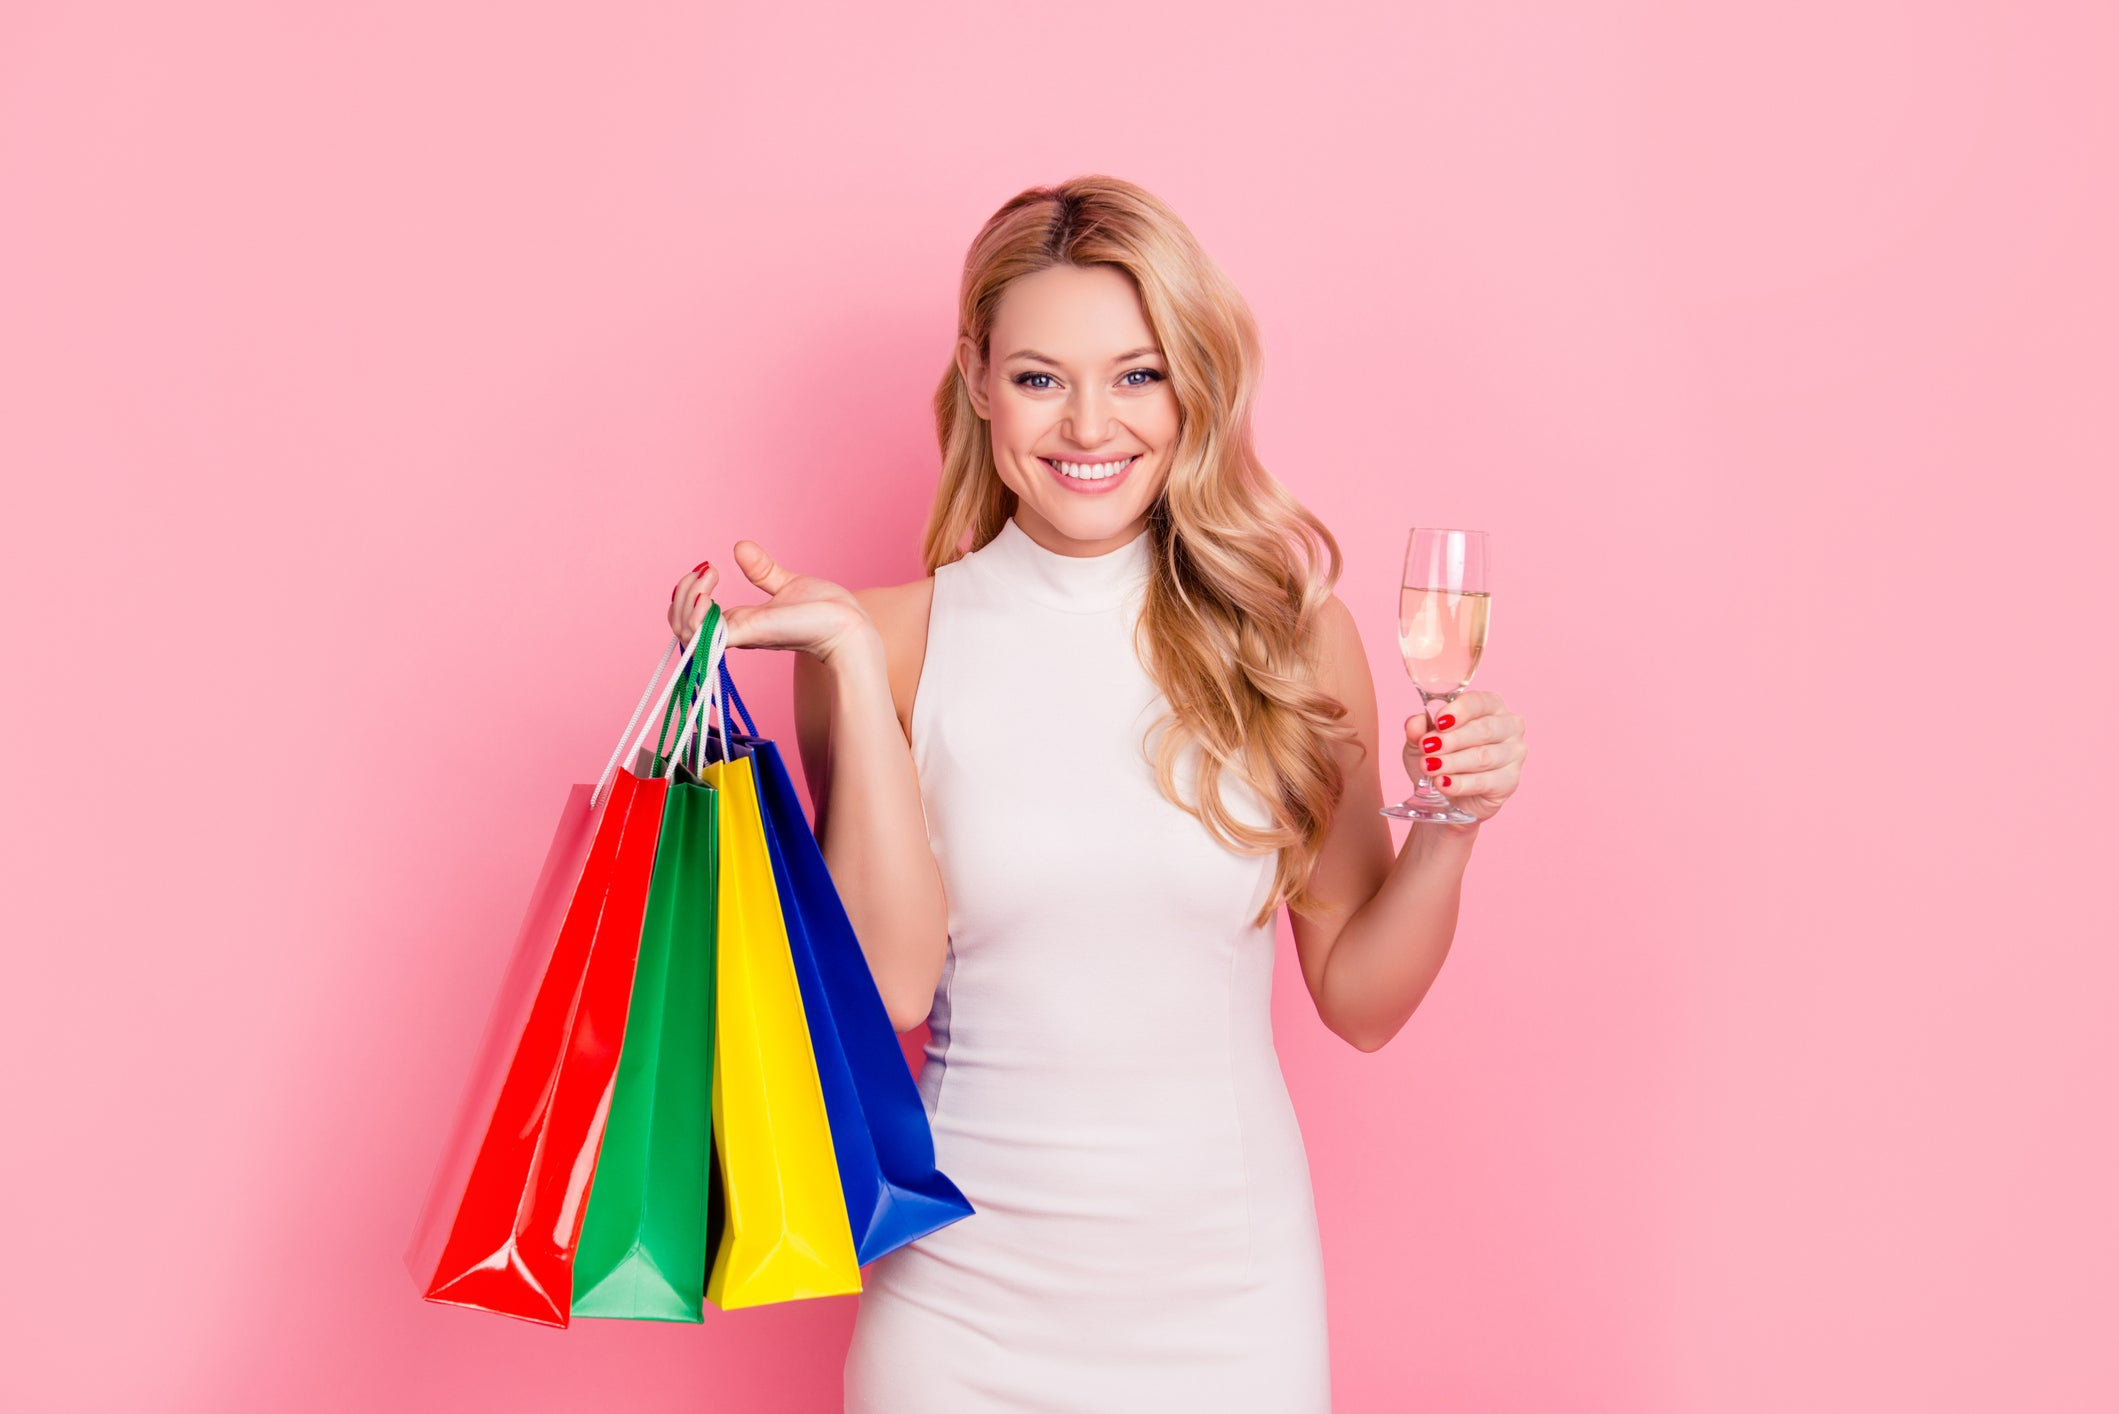 Woman holding shopping bags and wine glass against pink background.